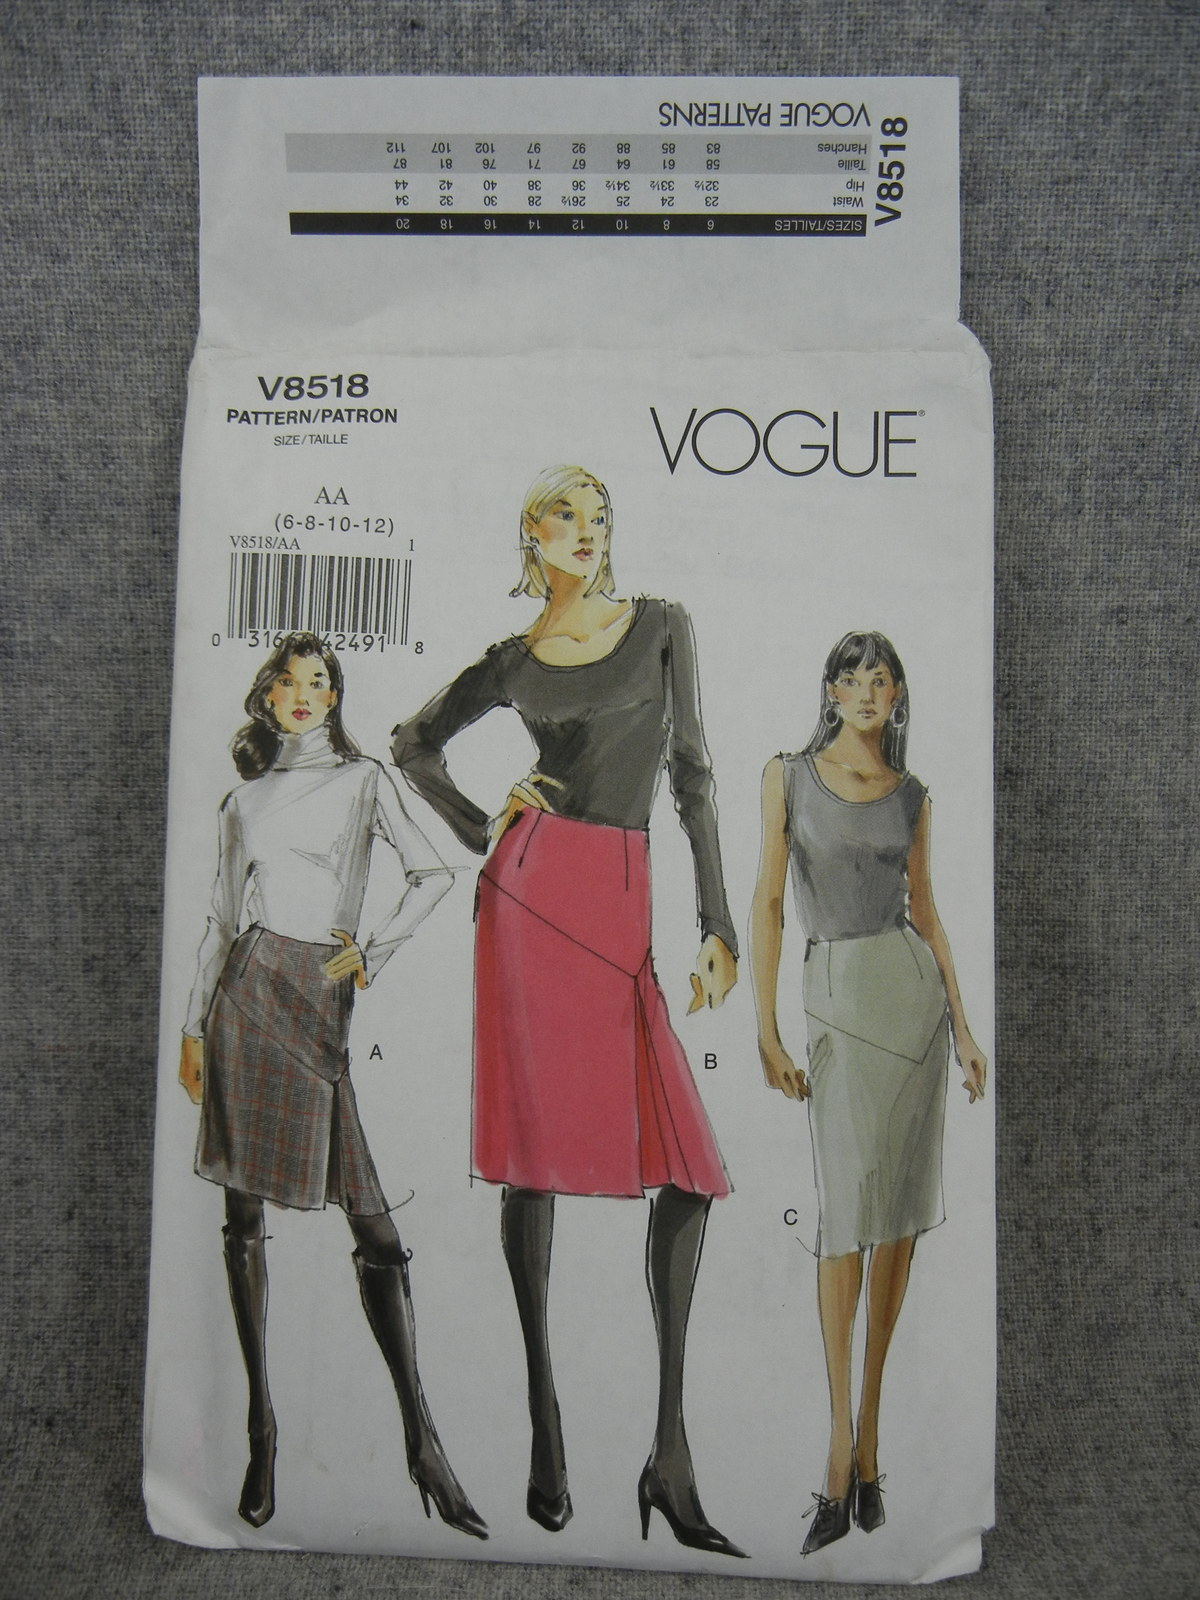 Primary image for Misses 6-12 Tapered lined Skirts with asymmetrical Yoke  2 lengths  Vogue V8518